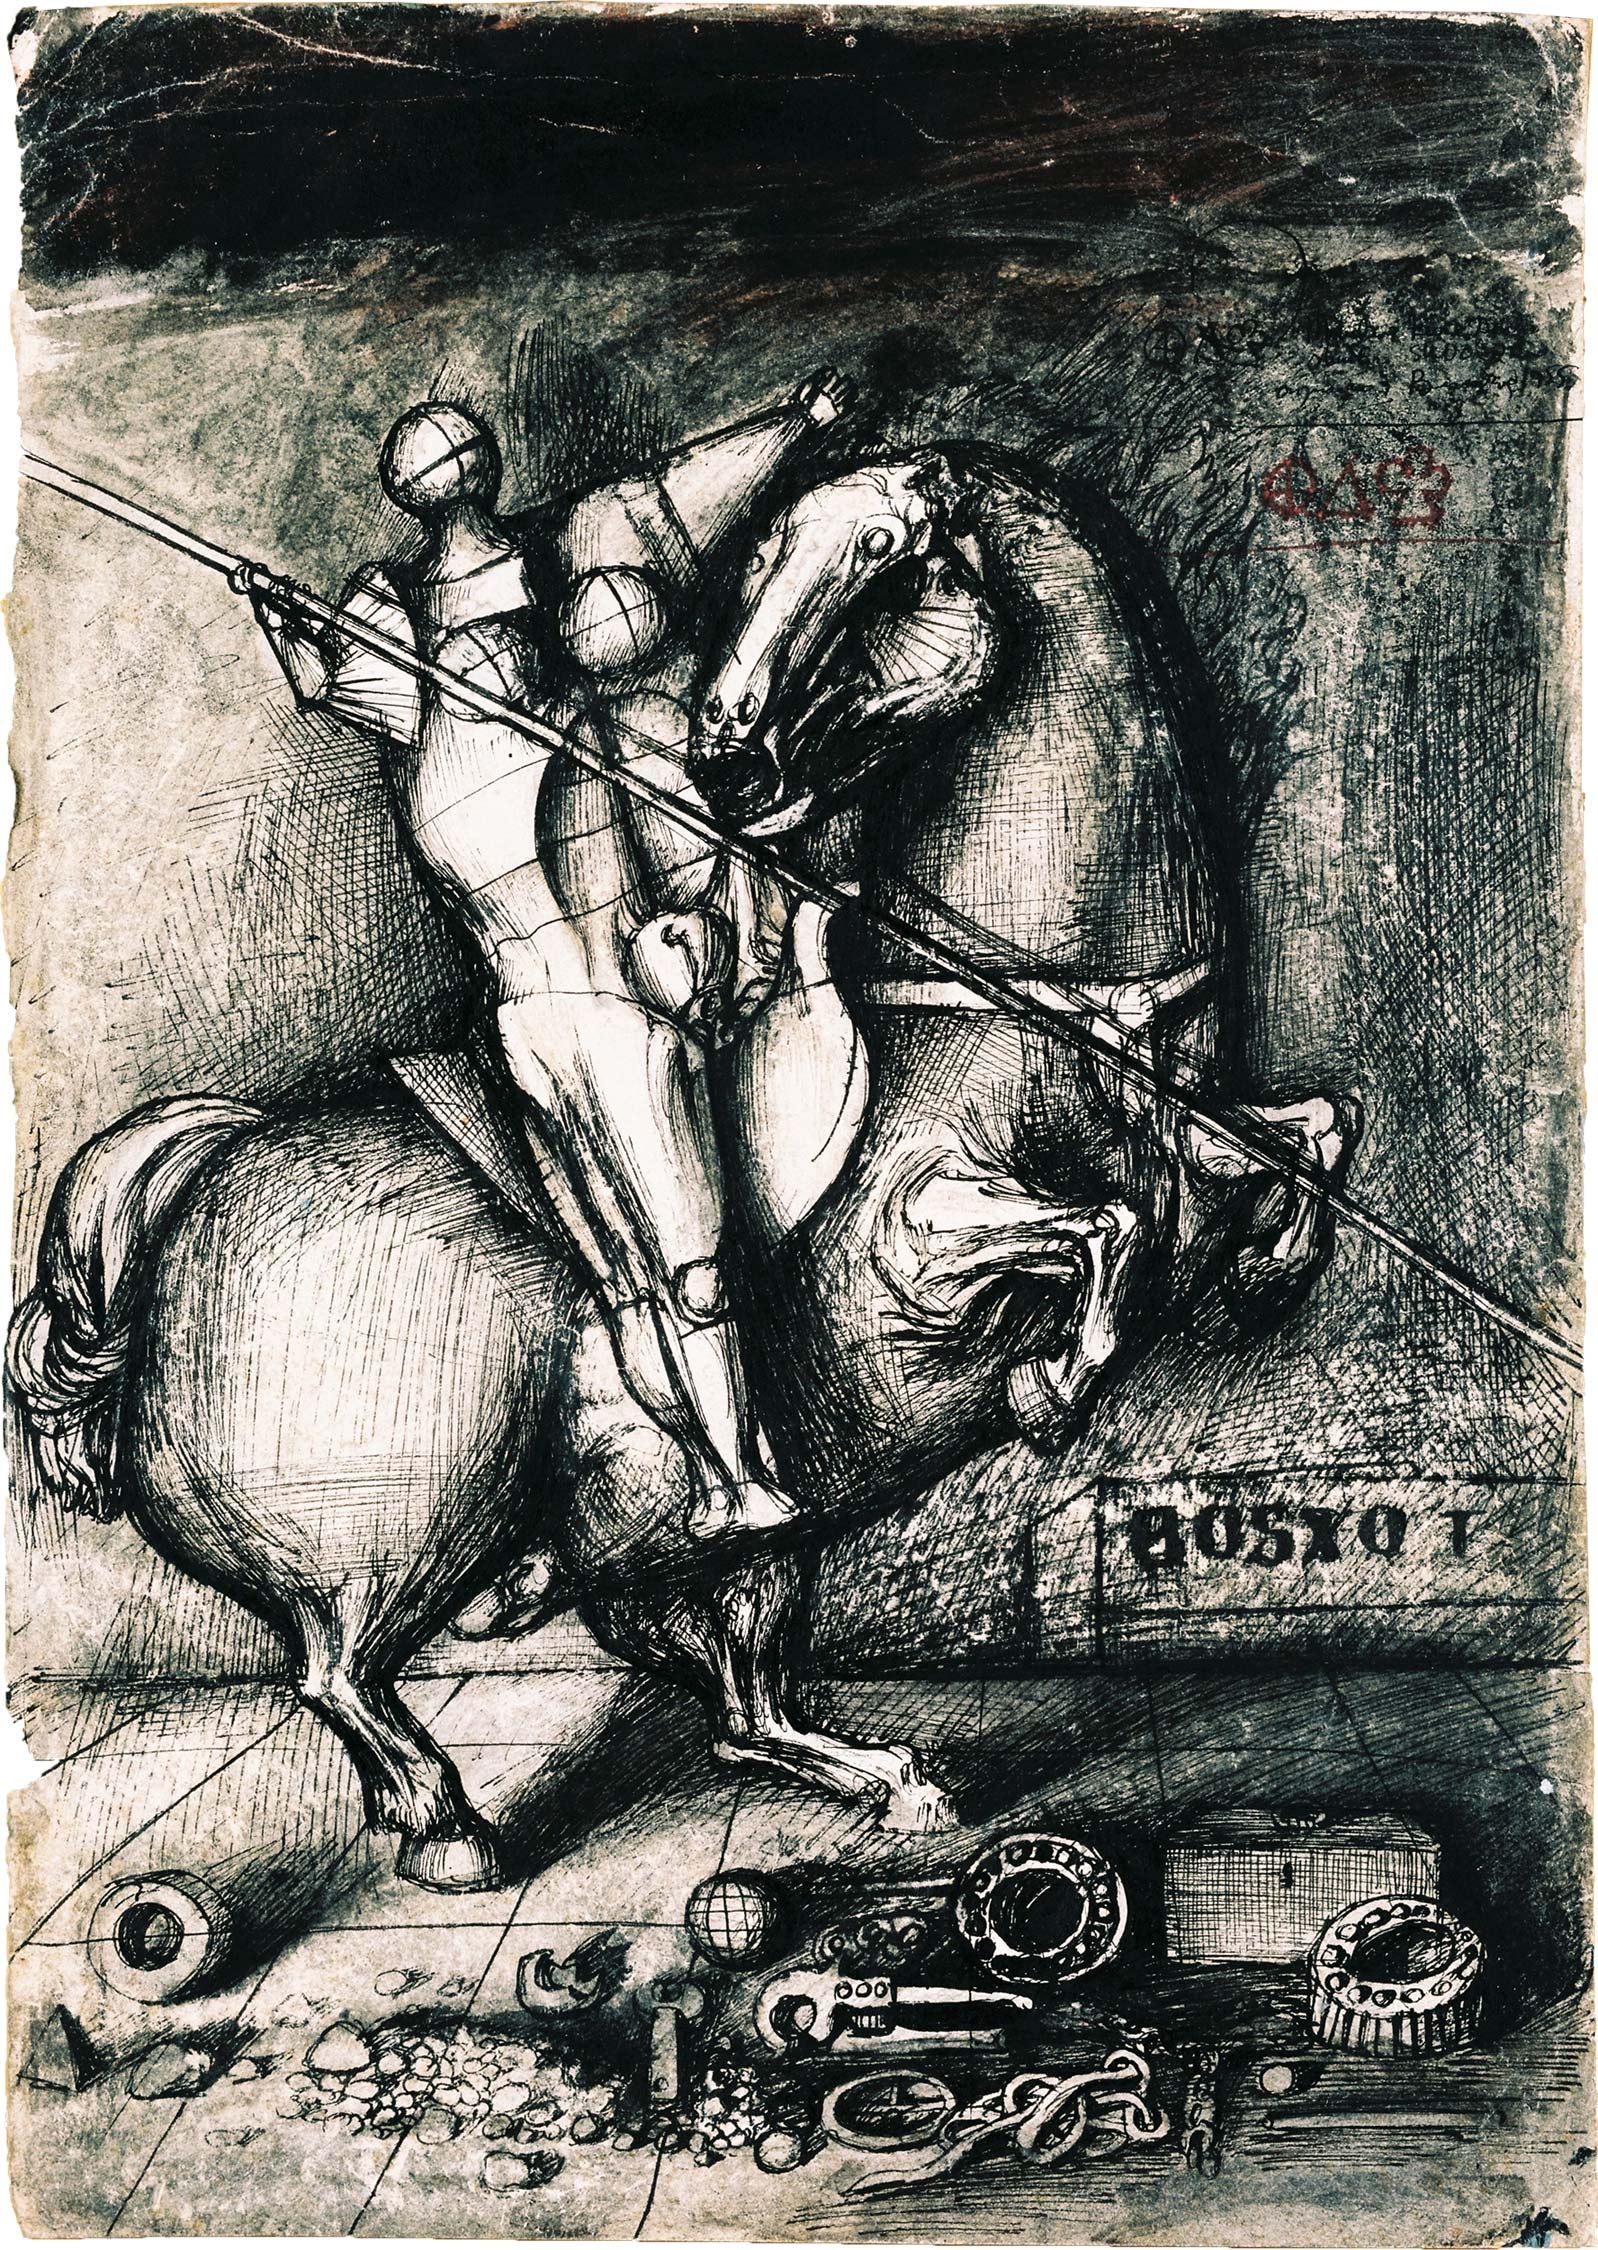 Dado's drawing: Medieval Knight, 1955